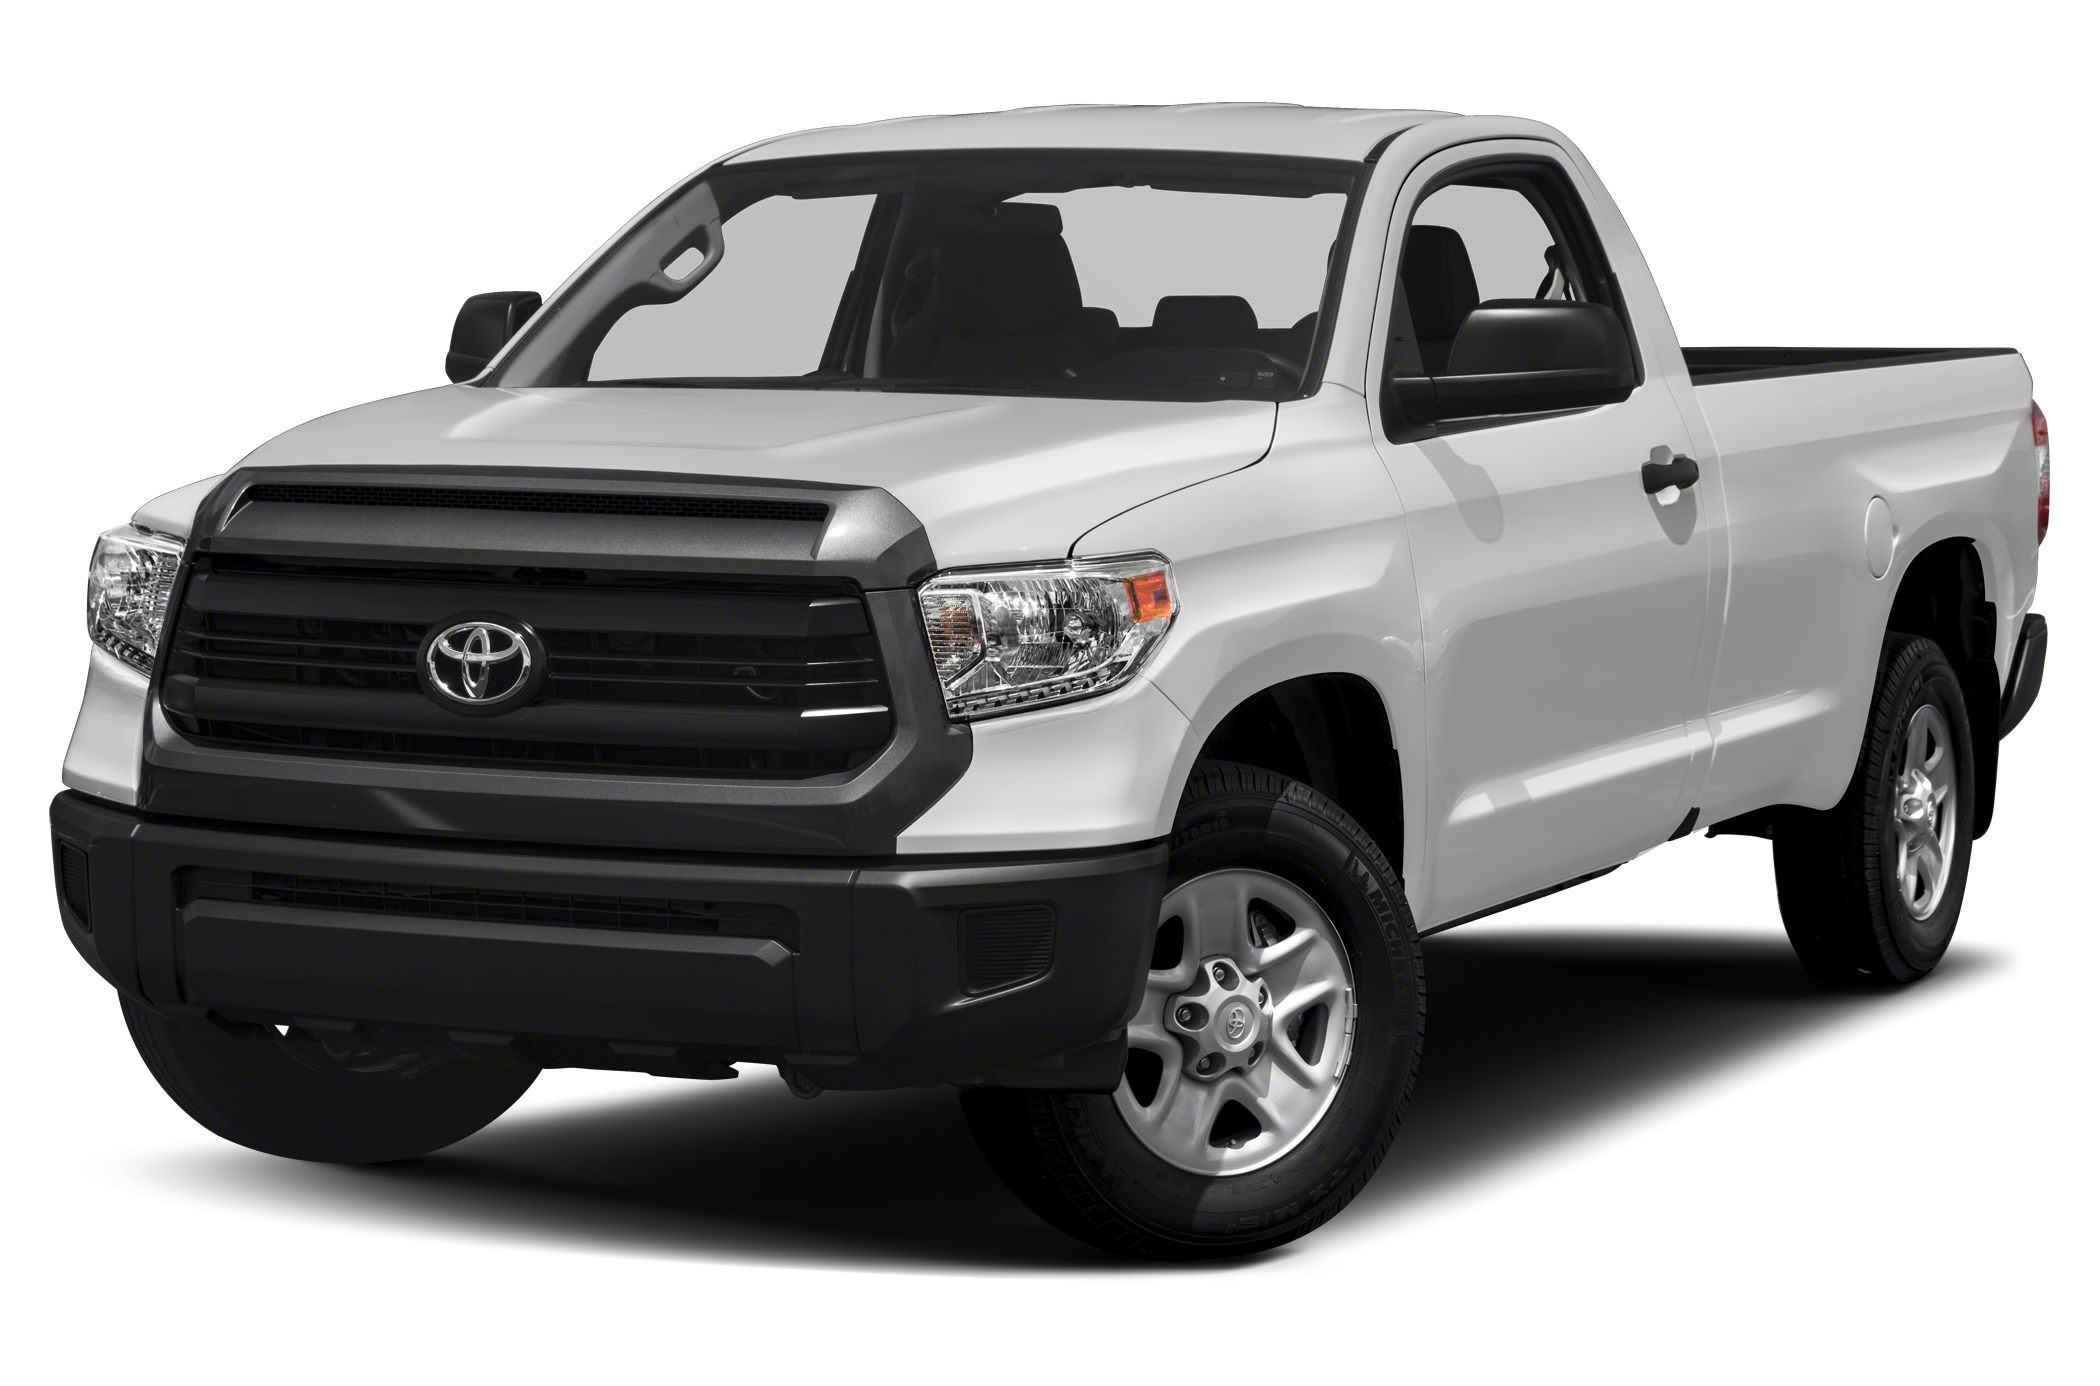 toyota tundra news photos and buying information autoblog. Black Bedroom Furniture Sets. Home Design Ideas